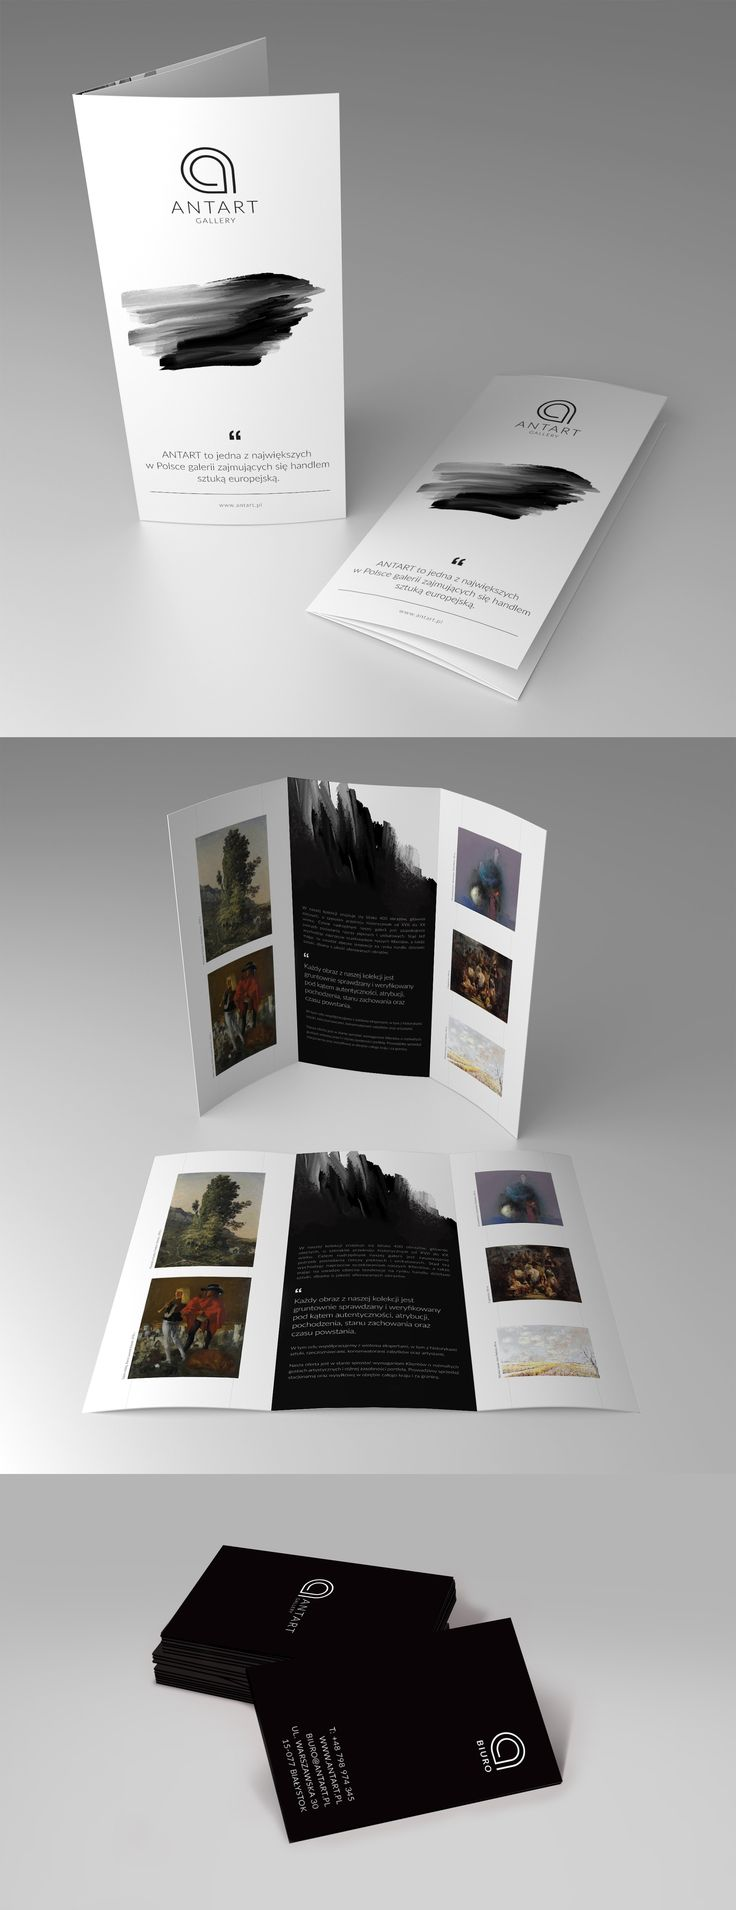 Ant Art gallery leaflets, business cards, clean design, elegant design, www.propercolors.pl/en/